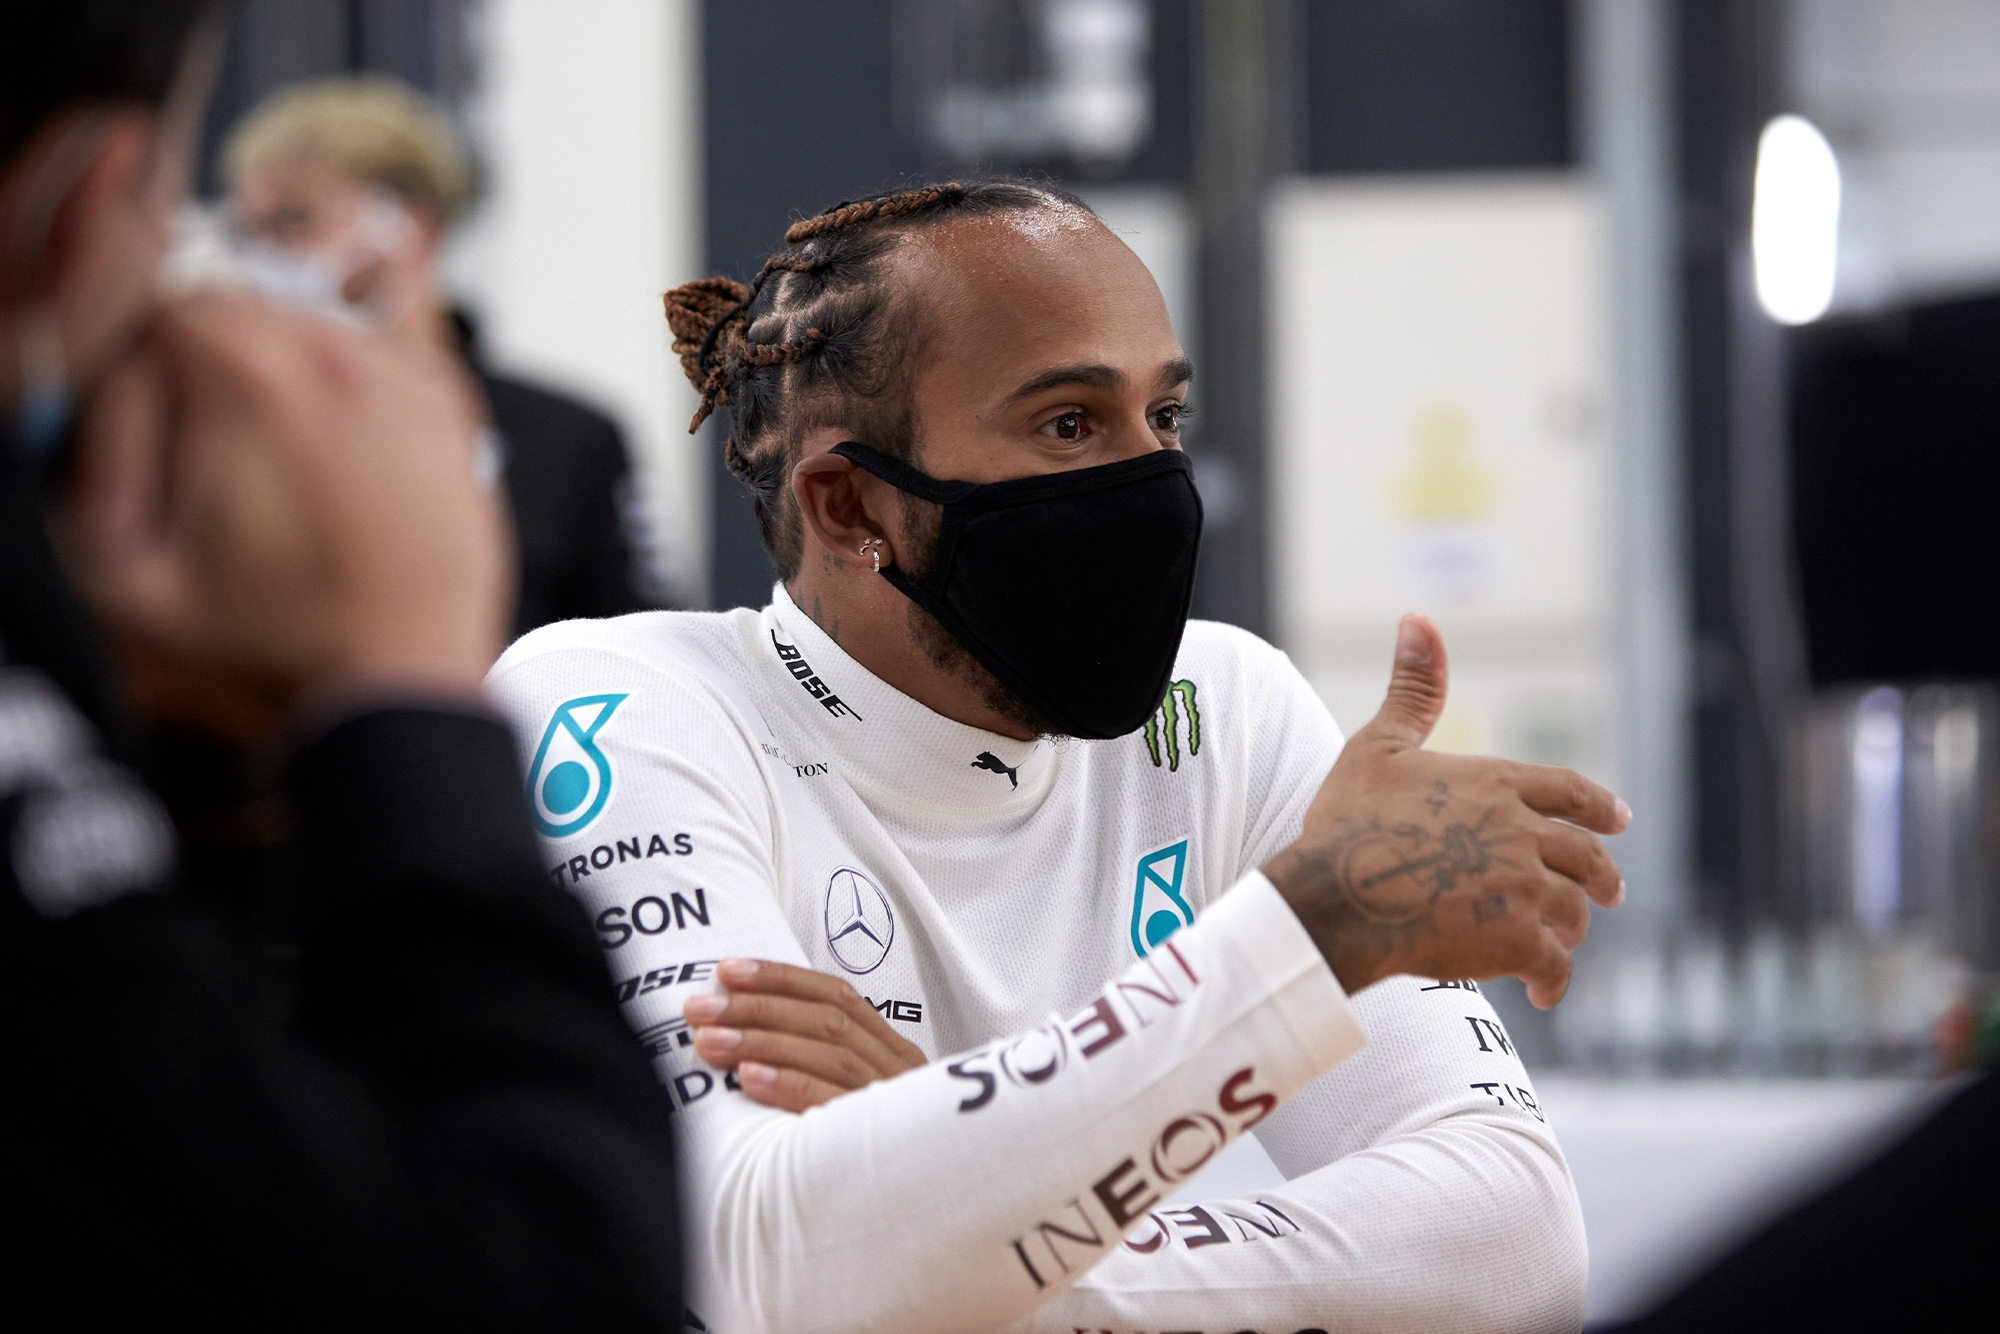 Lewis Hamilton puts his thumb up while wearing a mask at a 2020 Silverstone test